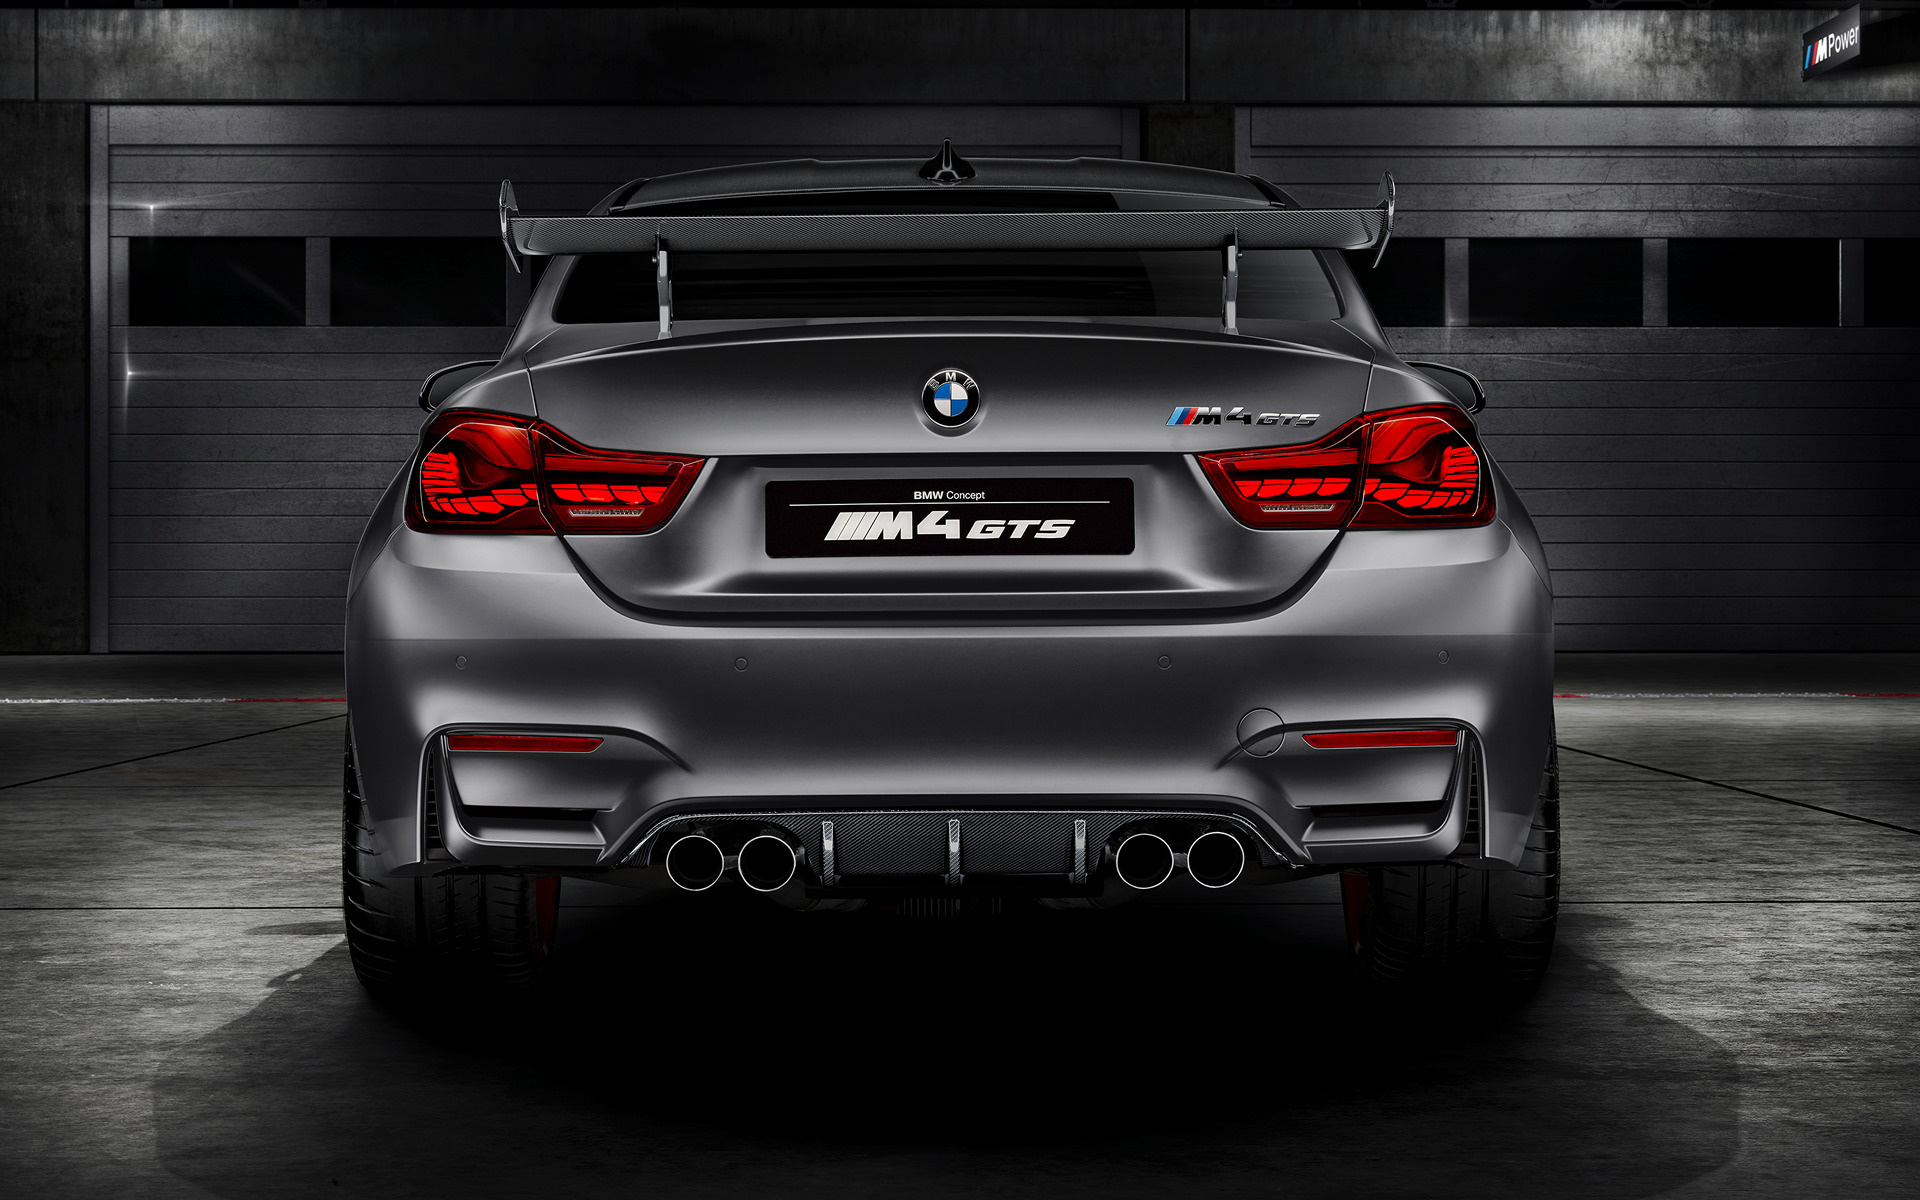 Bmw Concept M4 Gts 2015 Wallpapers And Hd Images Car Pixel